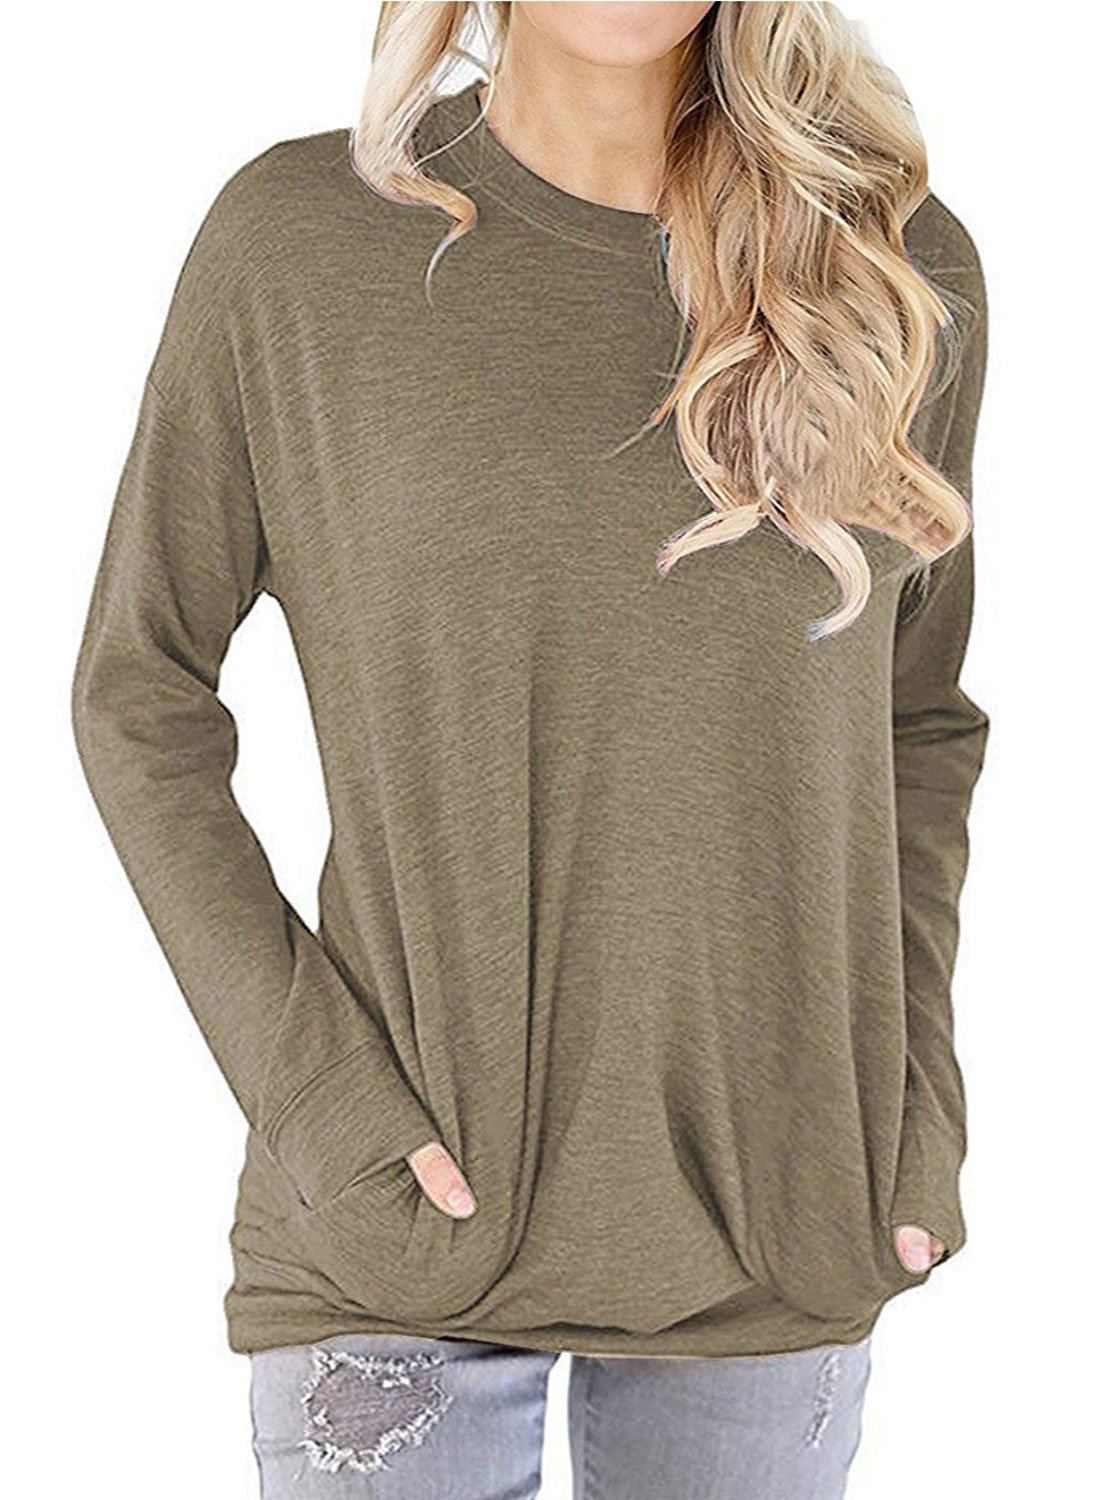 Lyxinpf Women's Casual Round Neck Sweatshirts Slouchy Pullover Long Sleeve Loose T Shirts Blouses Tops Khaki L